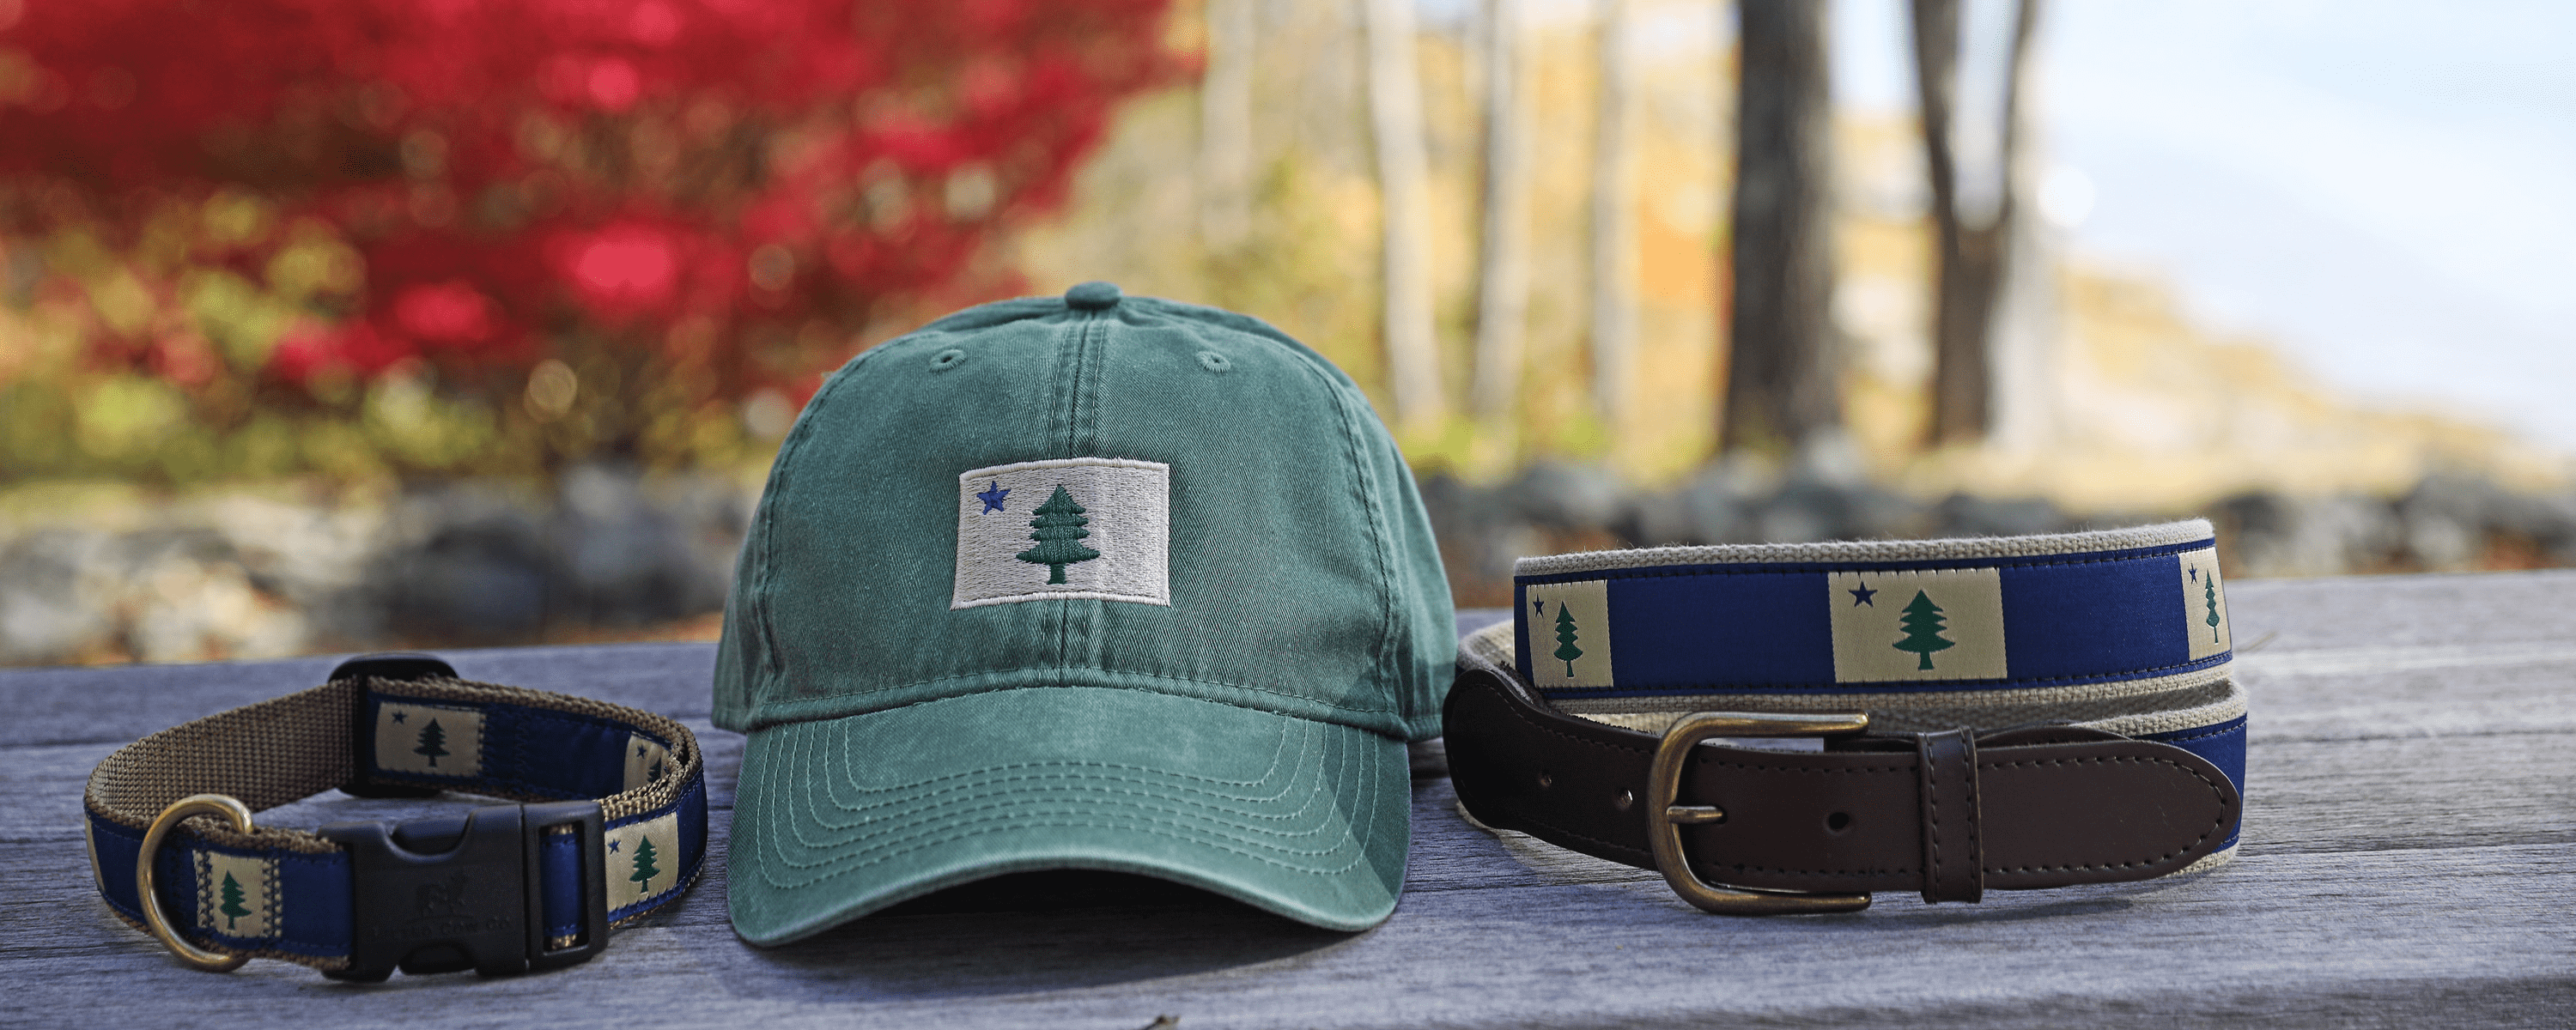 Maine Hat and Belt on rock wall